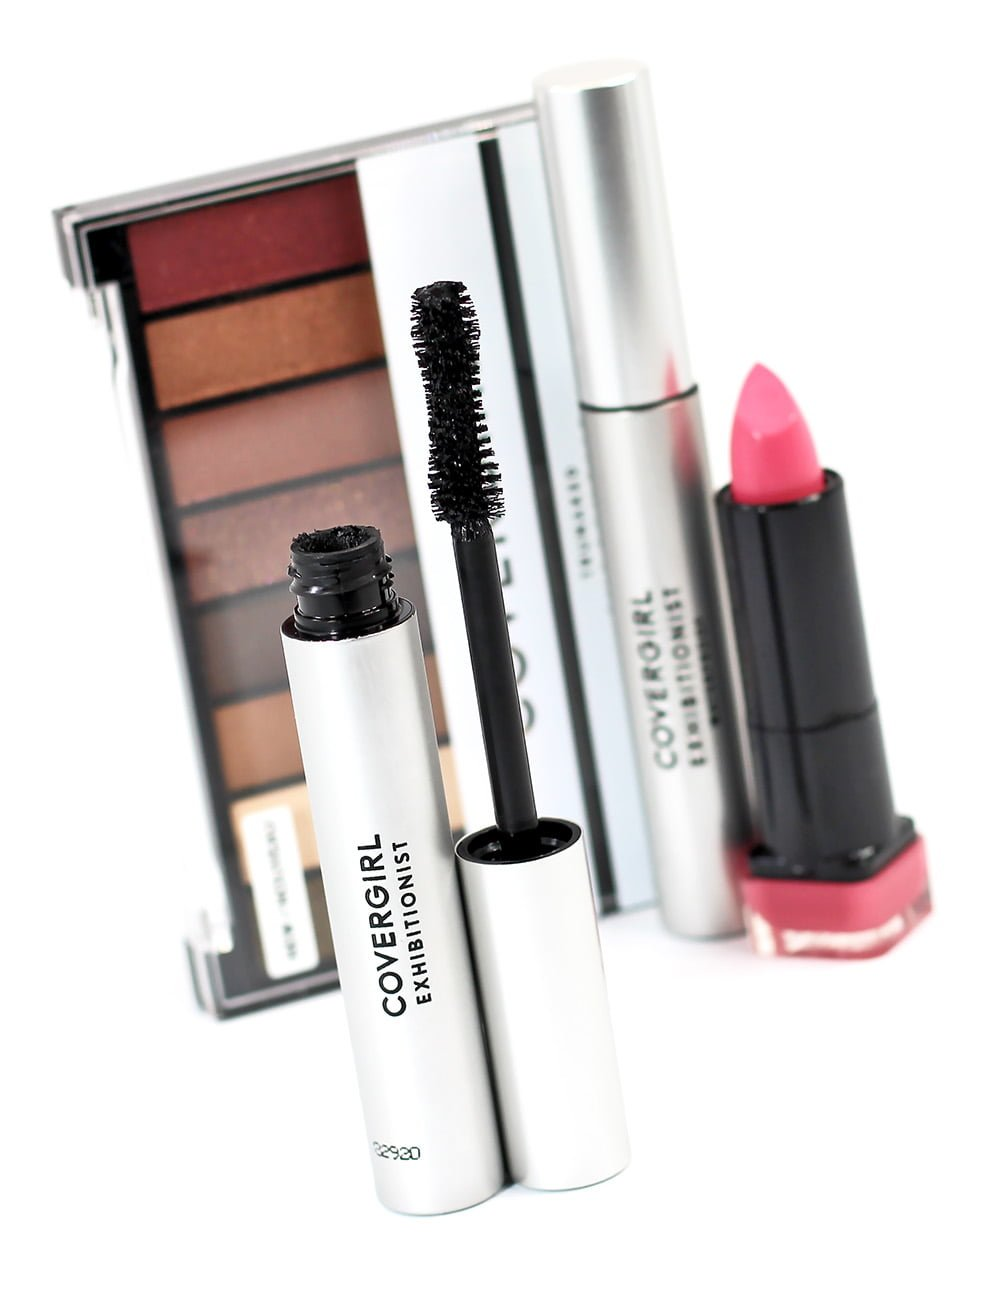 ffae7f59f14 Covergirl Exhibitionist Mascara Try On Video + Review